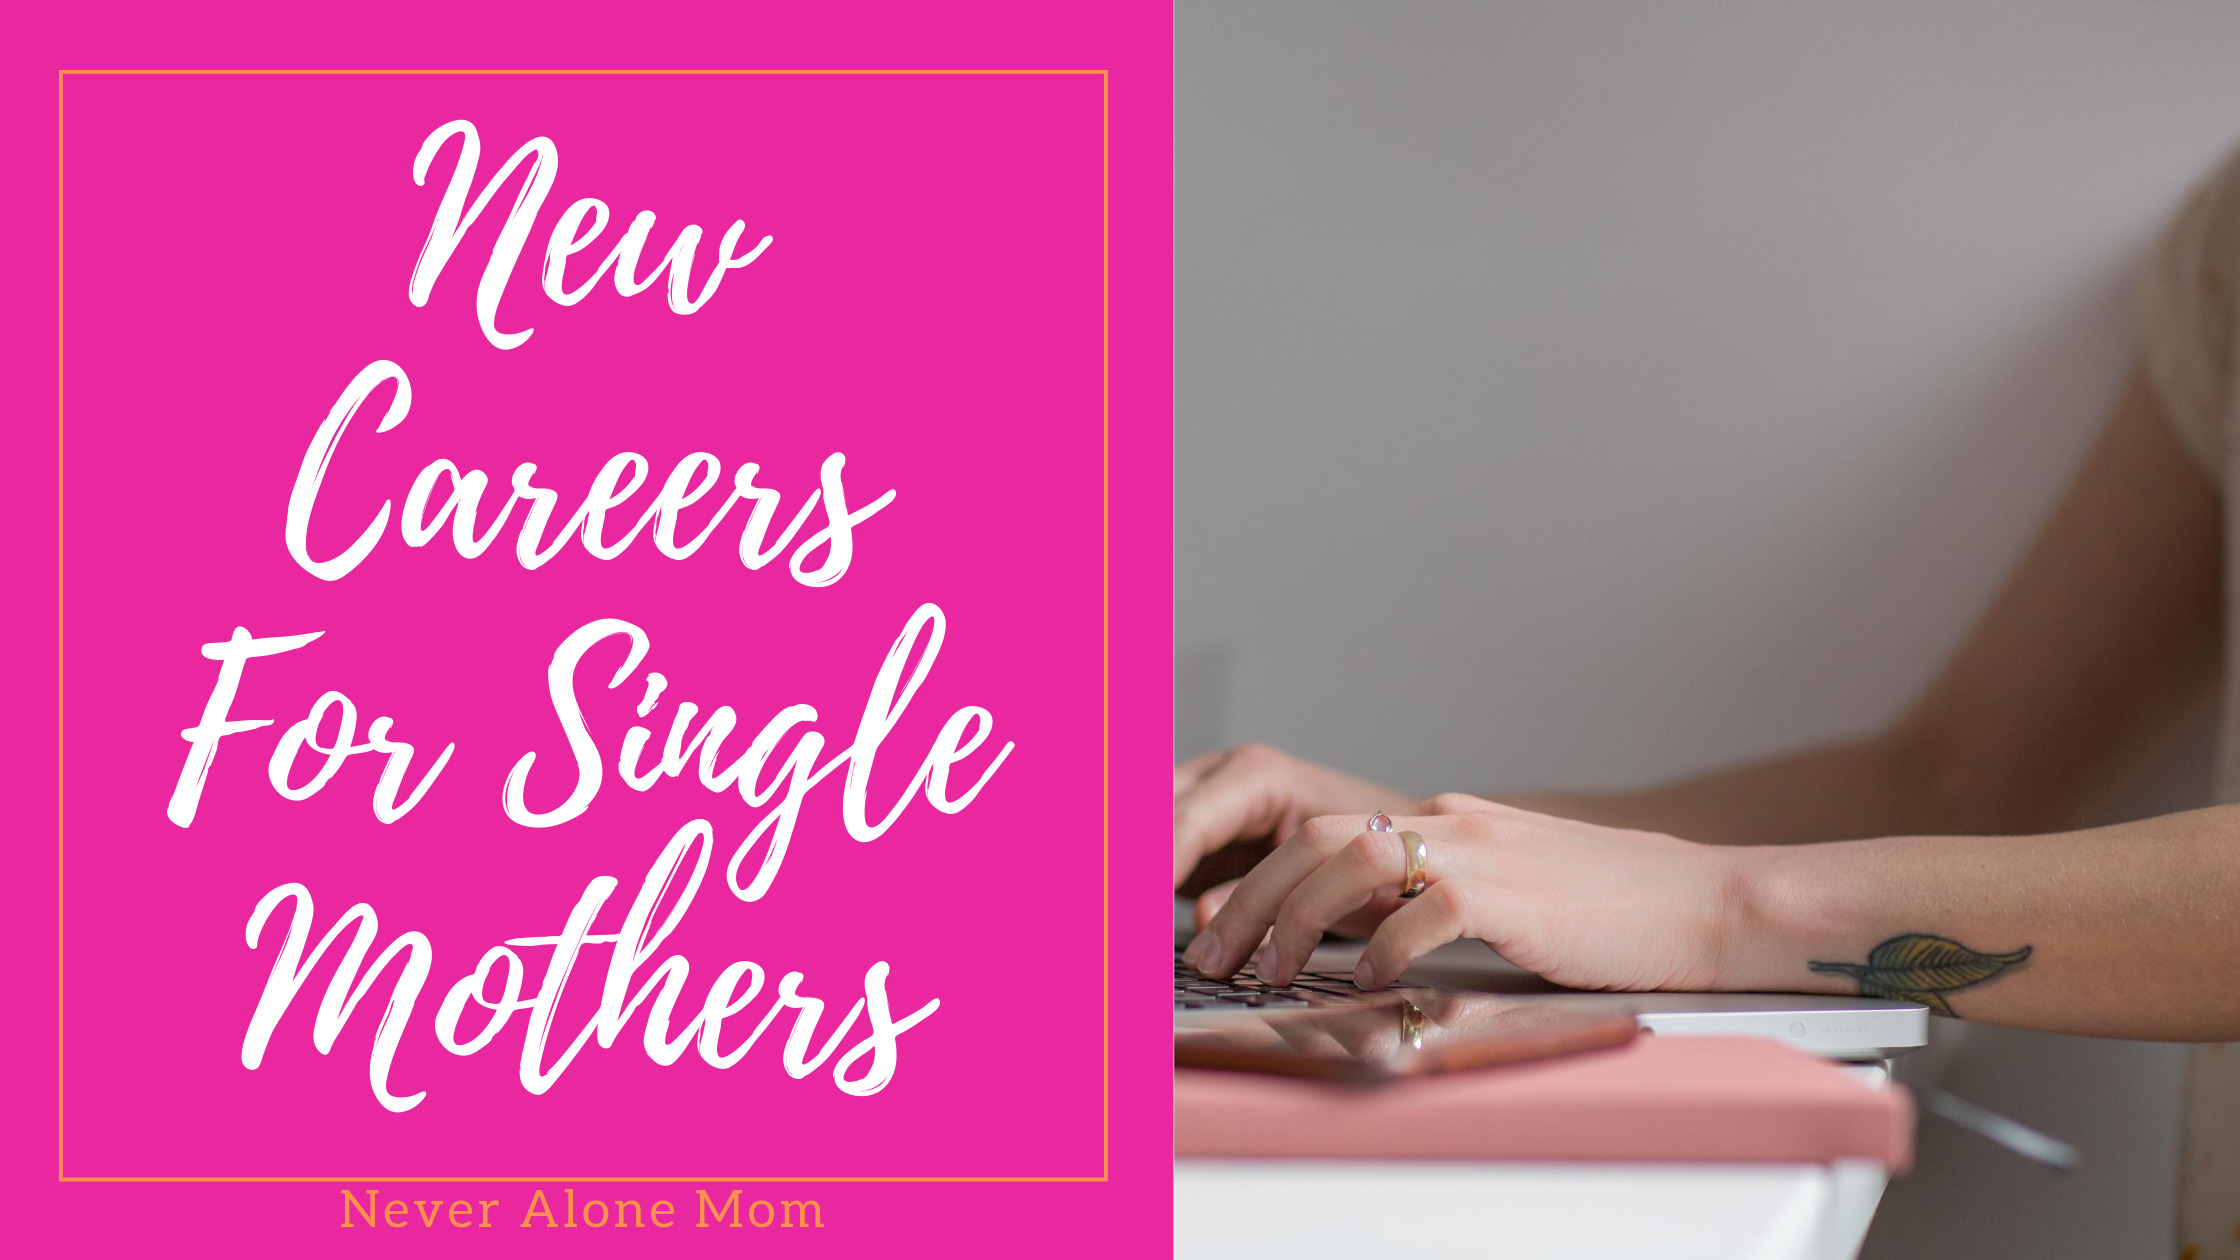 Careers for single moms |neveralonemom.com